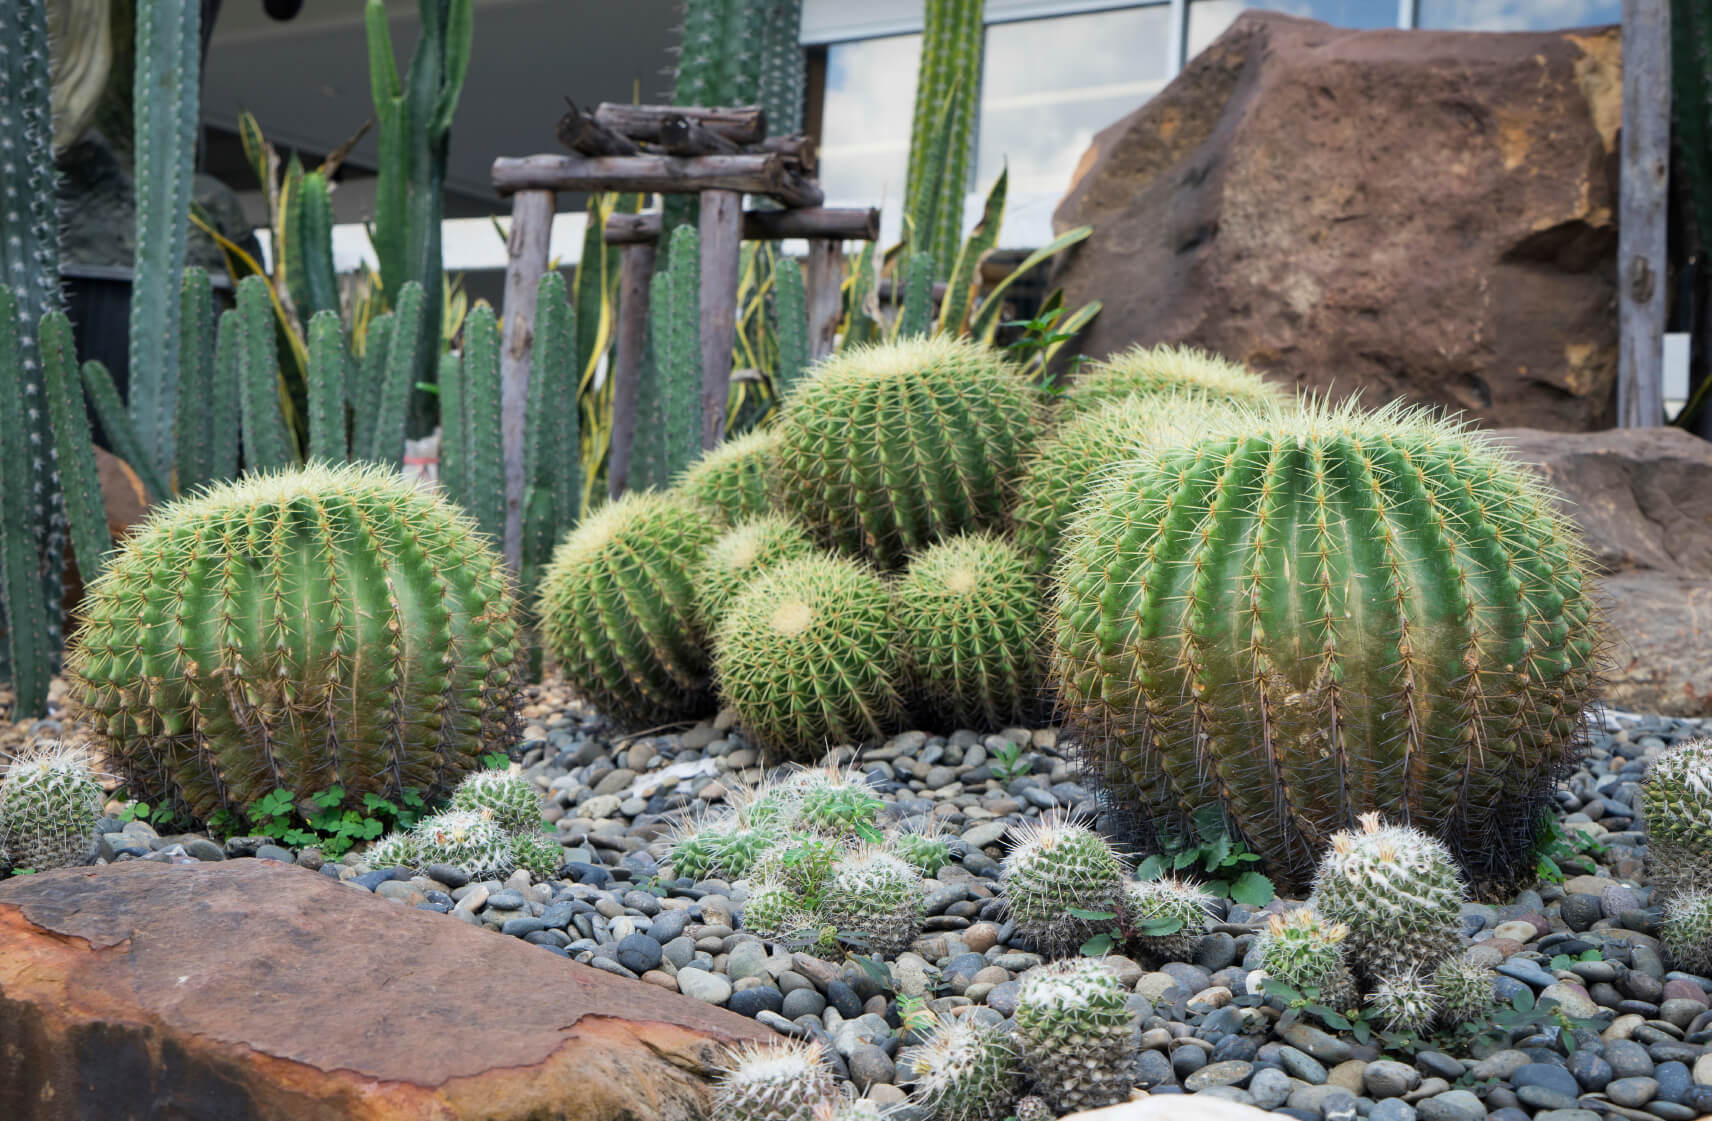 You can use different kinds of stones and dirt in a cactus garden which gives a great number of options in color and design. You can use stones to make a cool contrast to the cactus as in the picture above.